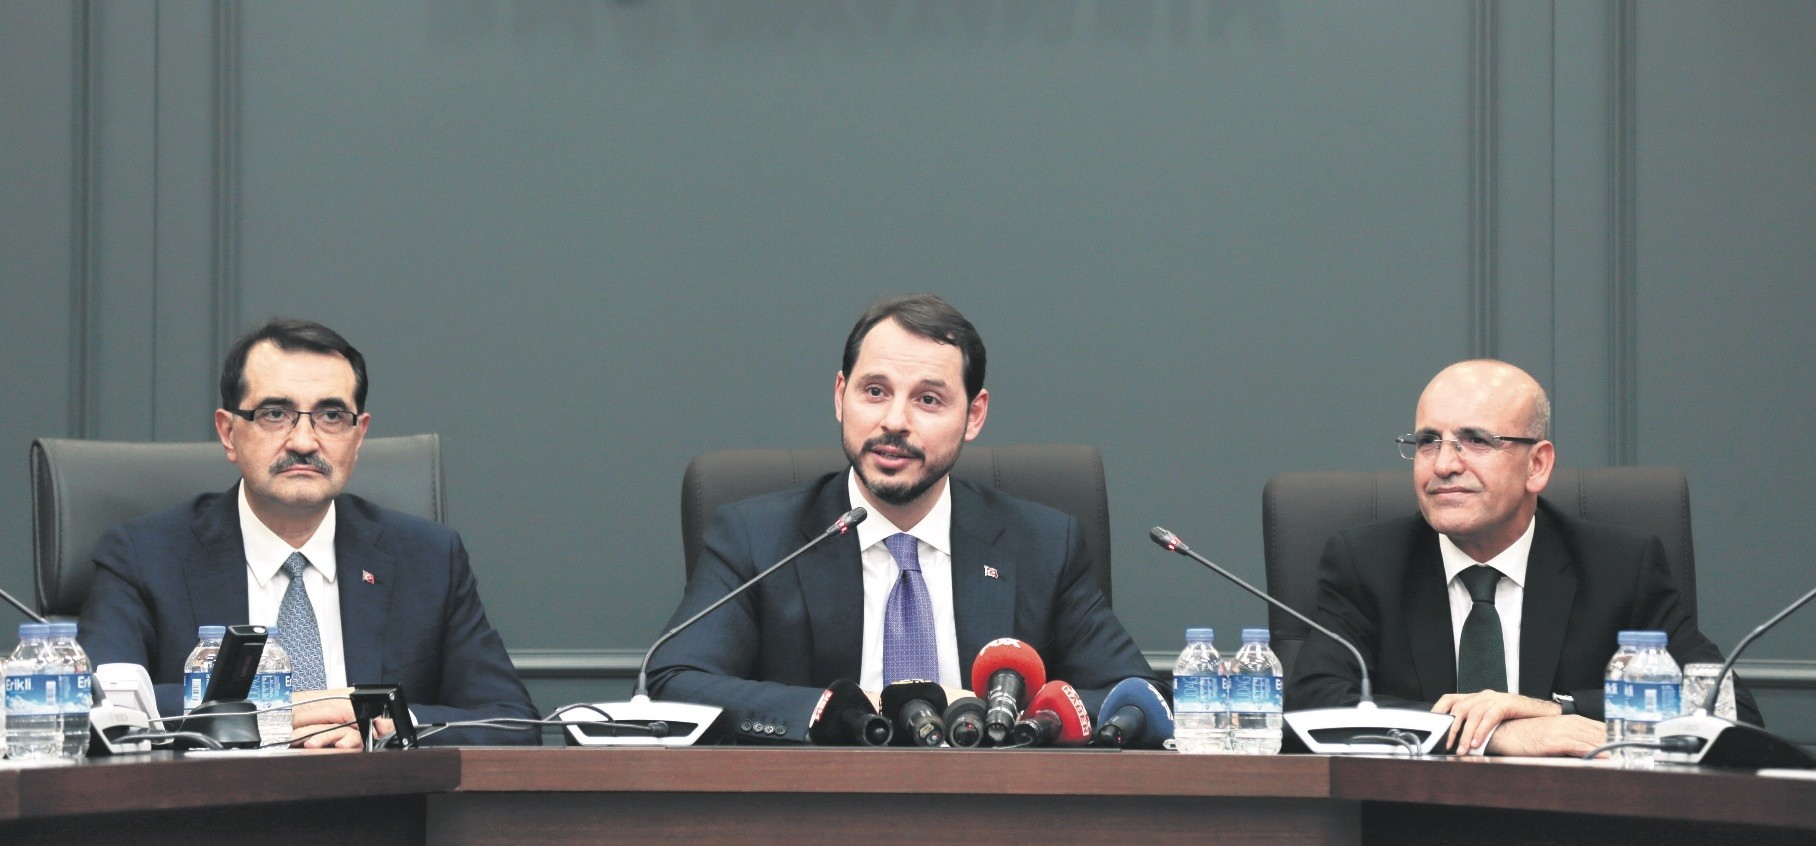 Treasury and Finance Minister Berat Albayrak (C) pledged yesterday that the operational capacities of the central bank will be widened to ensure price stability and that the bank will be more active than ever in the upcoming period.